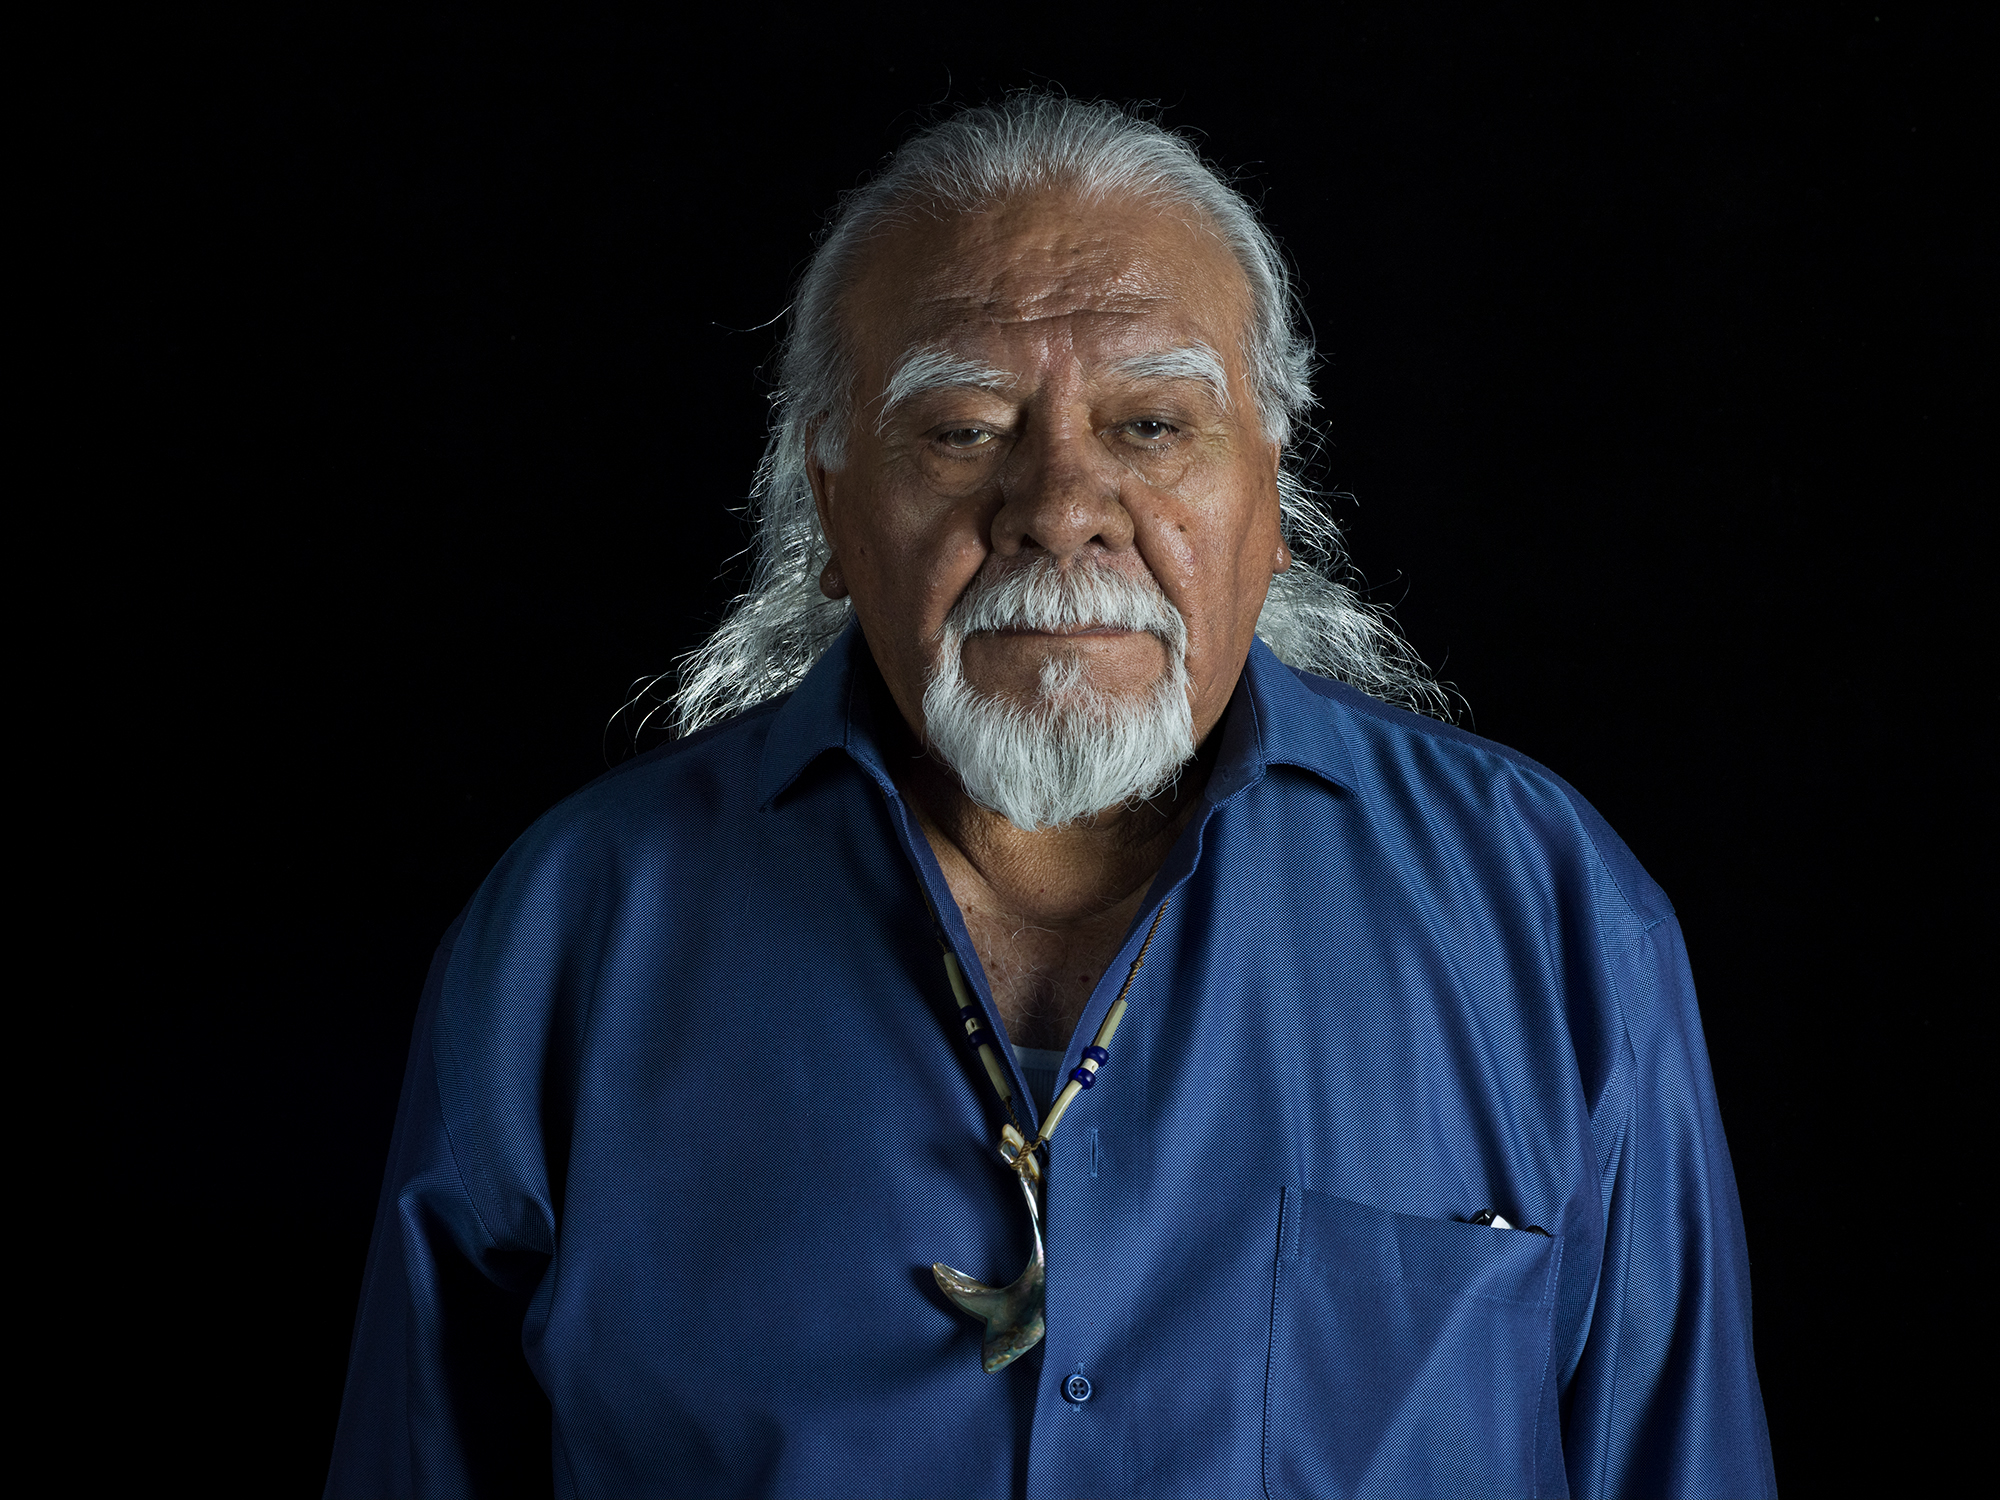 Chumash Elder Joe Talaugon at Guadalupe Cultural Center